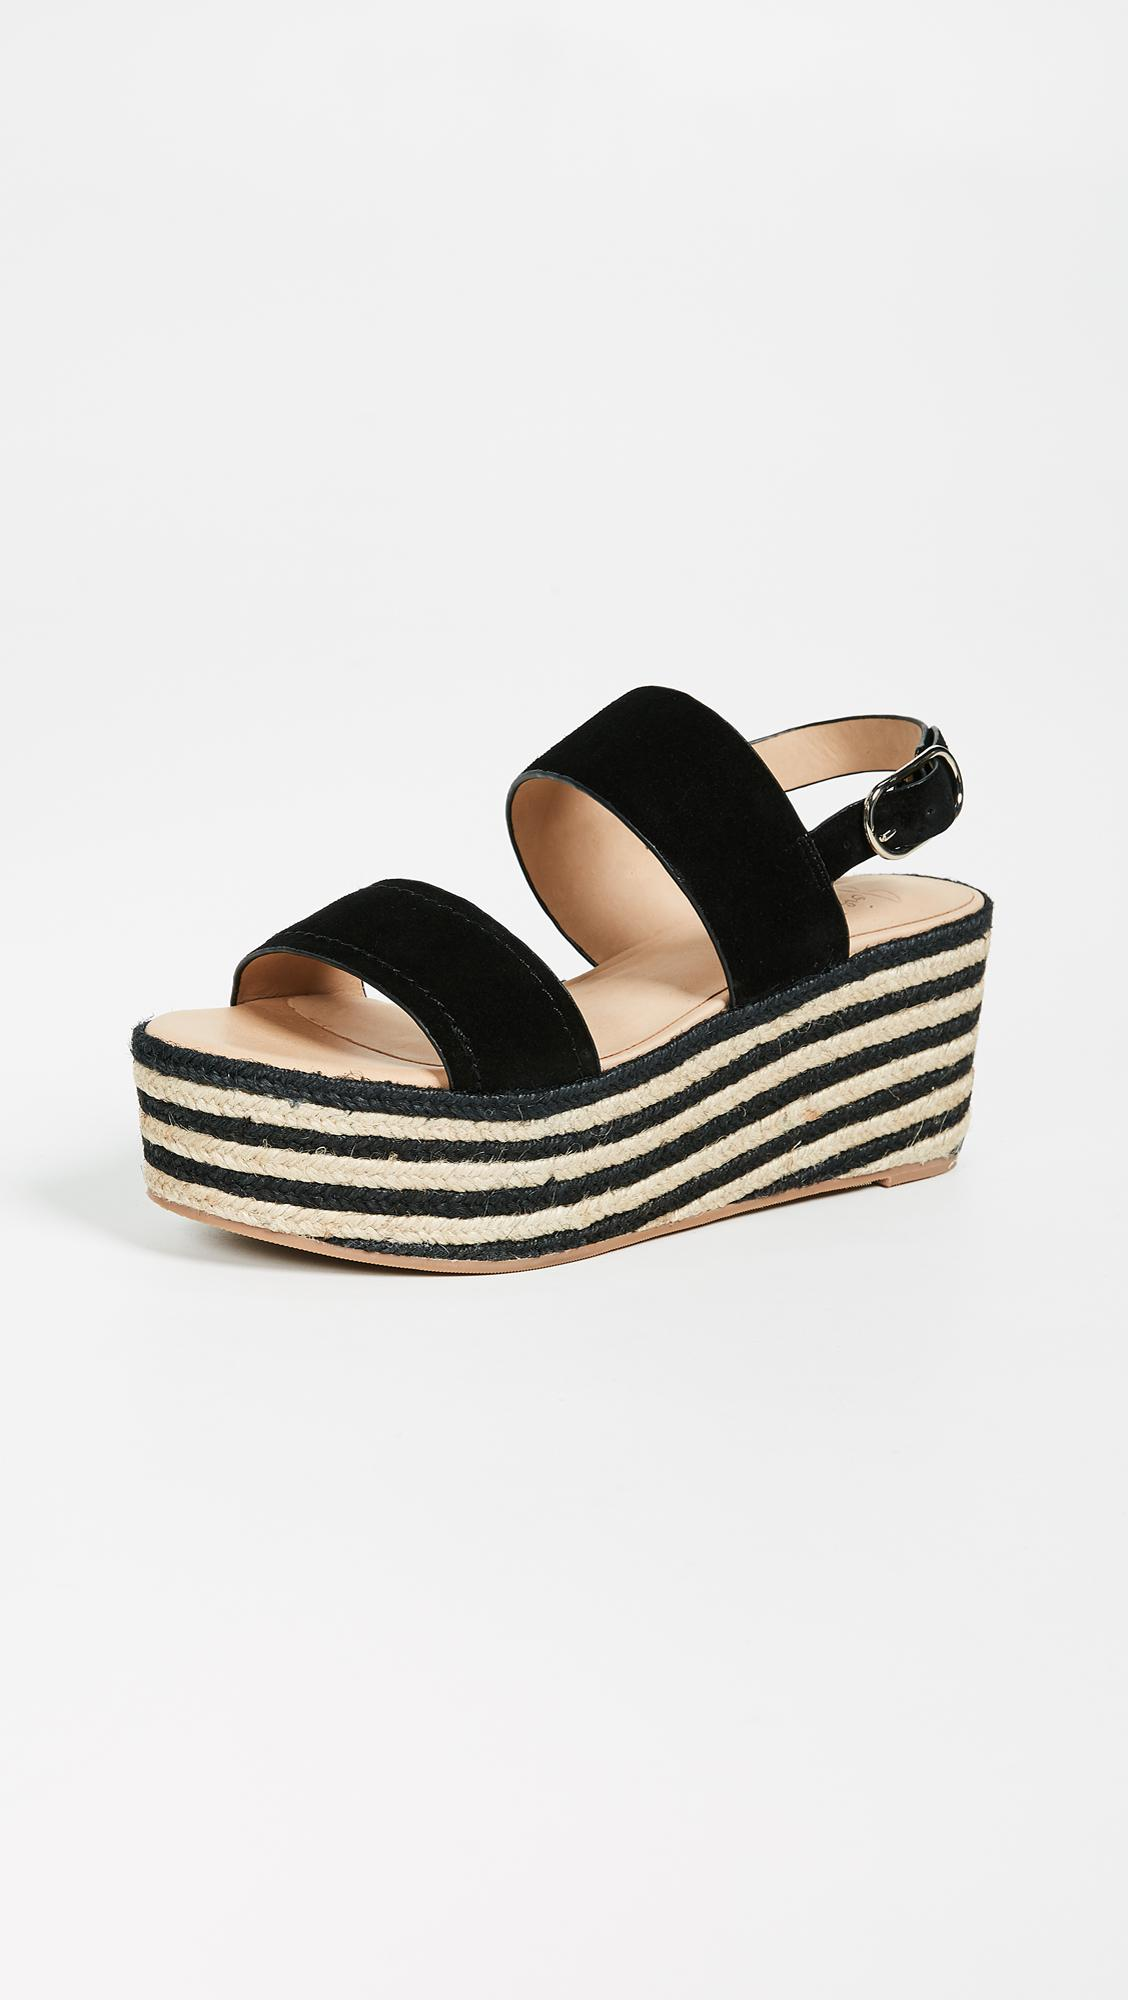 78aba40f592 Joie Galicia Two Band Wedges in Black - Save 47% - Lyst